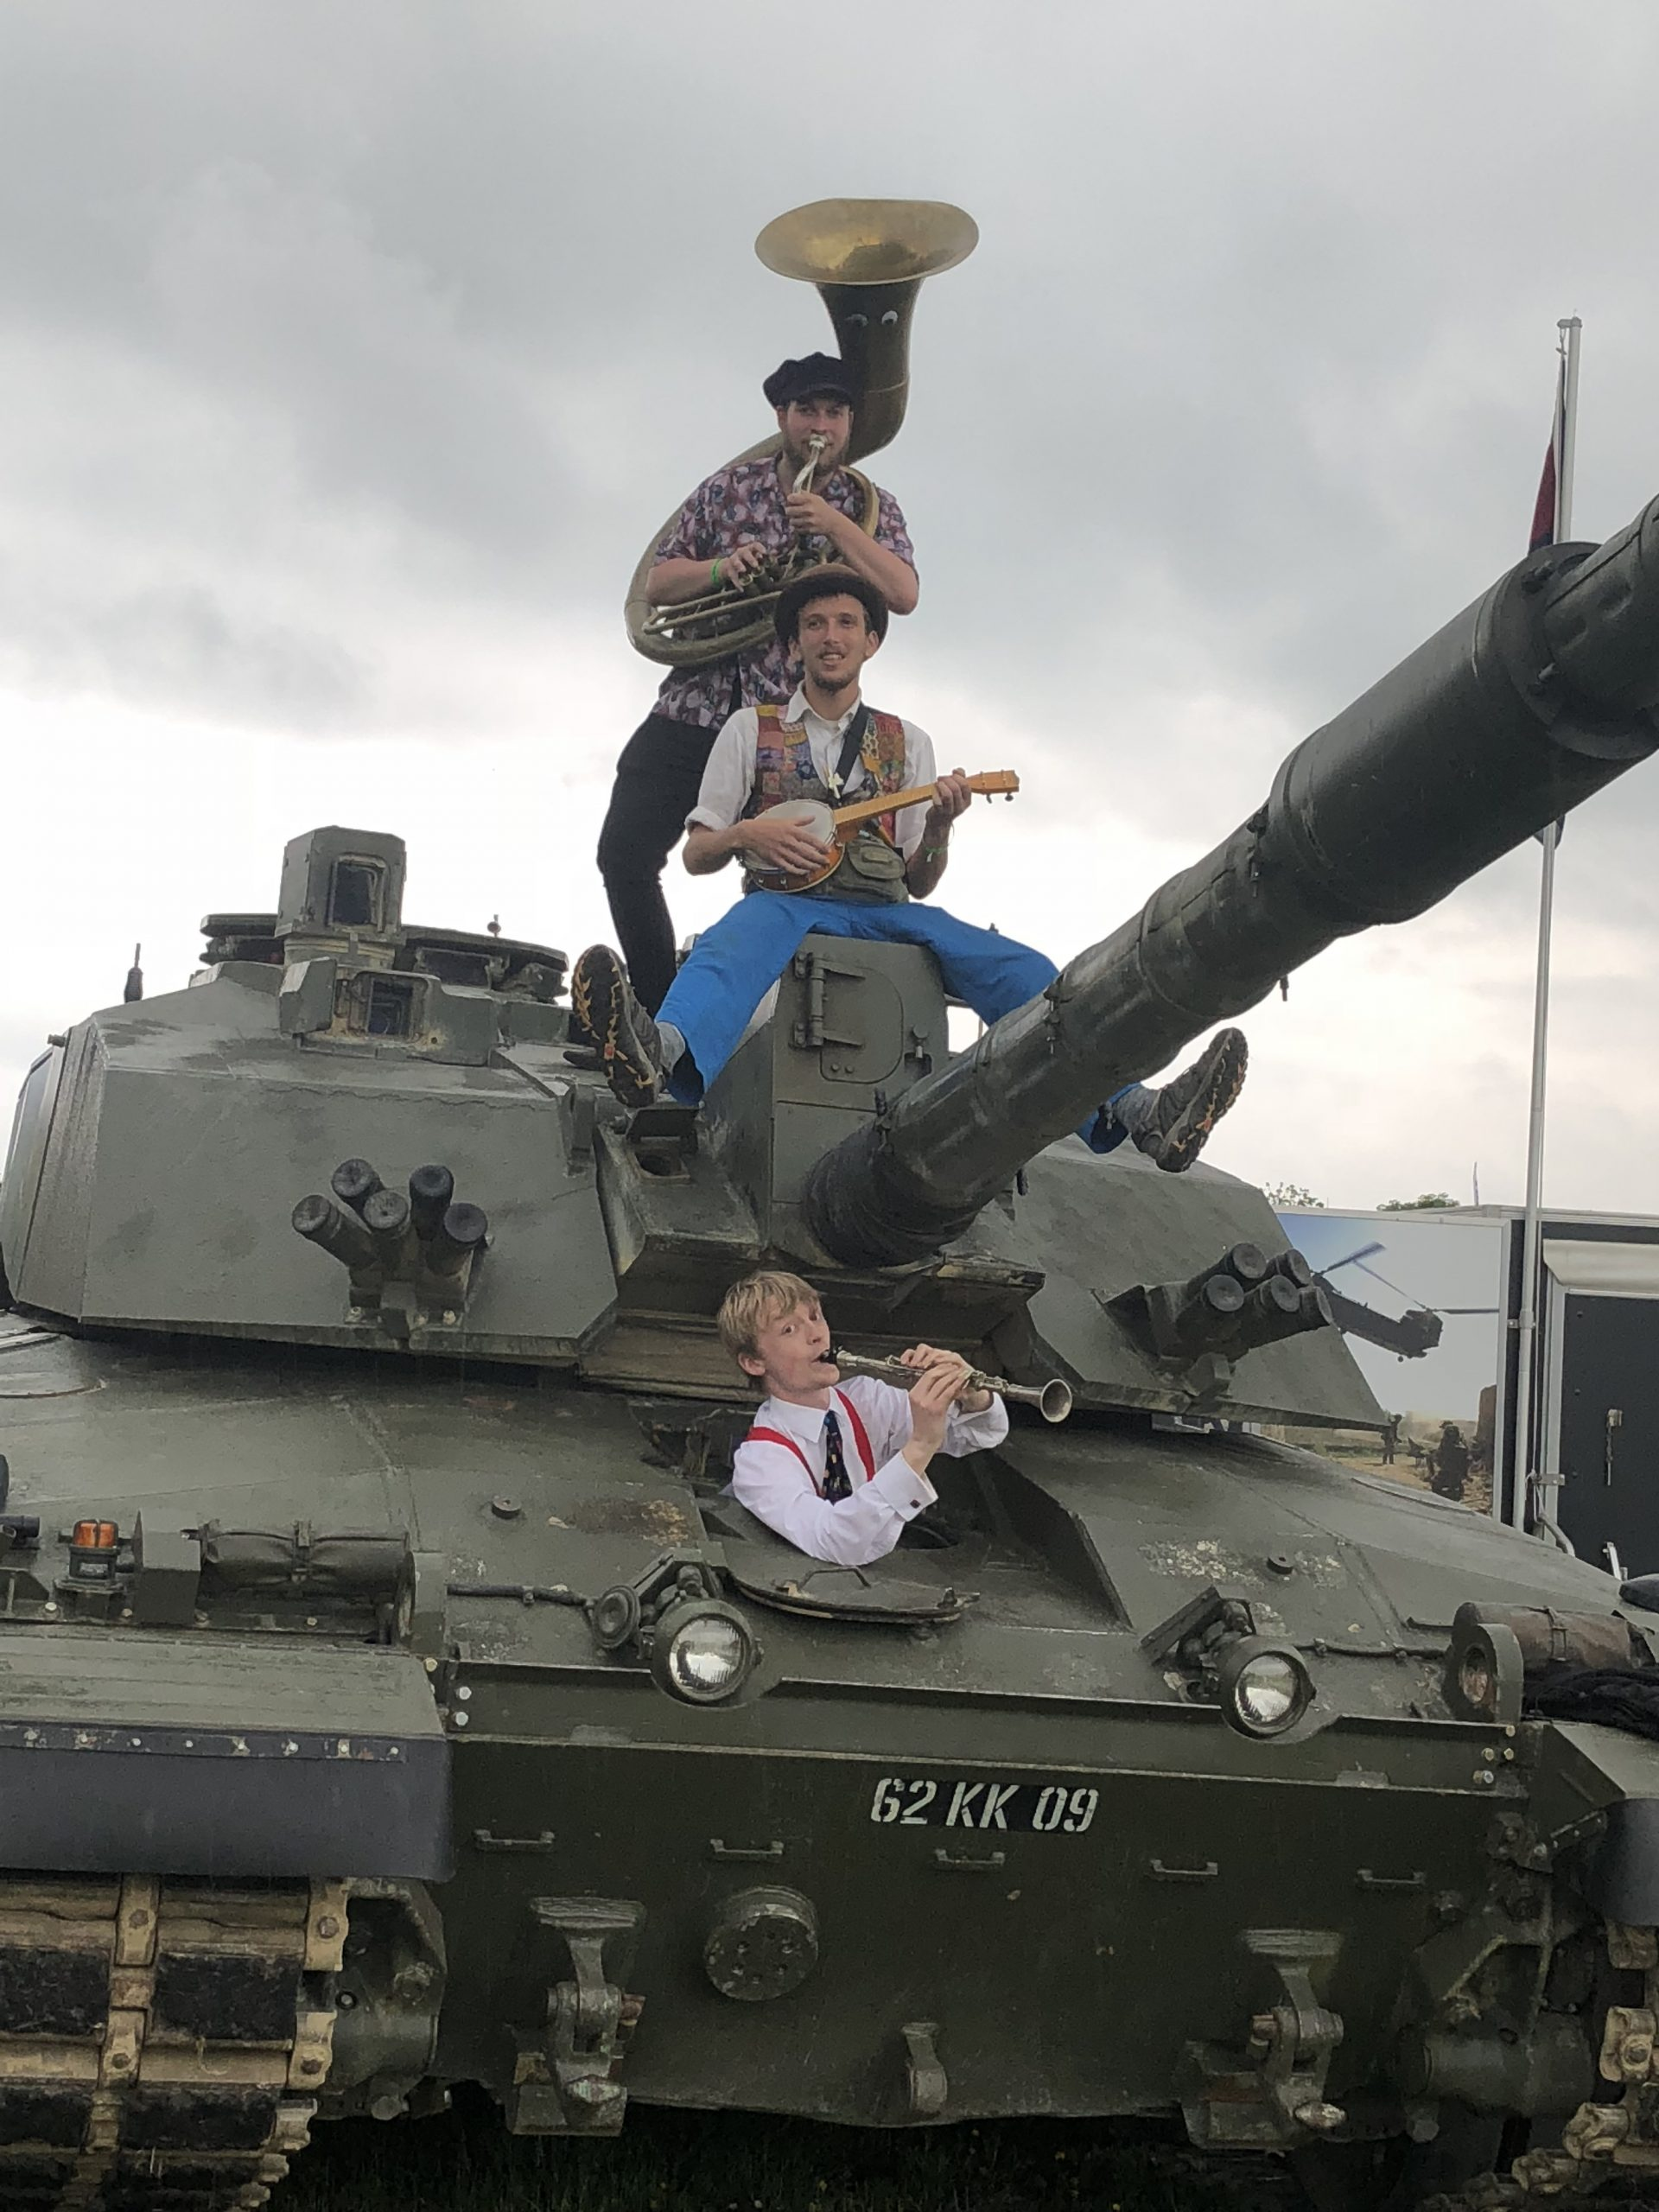 The Jelly Roll Jazz Band performing on a tank at the Royal Bath and West Show, May 2018